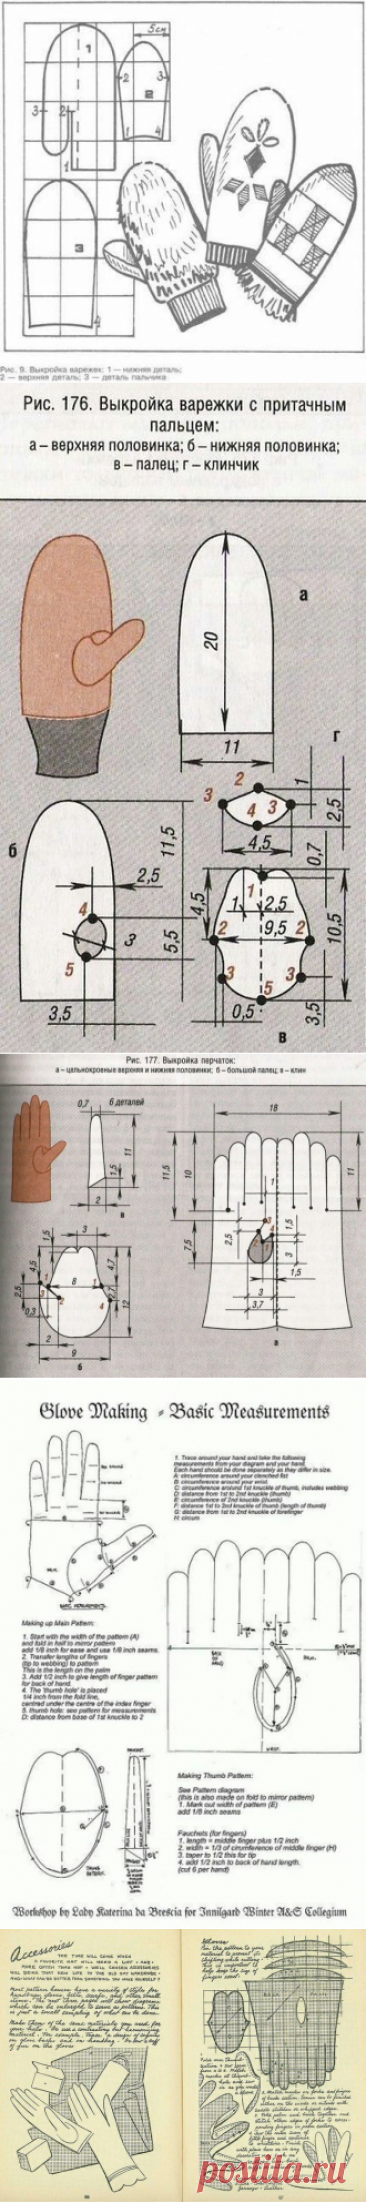 The tailor • Sewing, alterations - is easy! Mittens and gloves